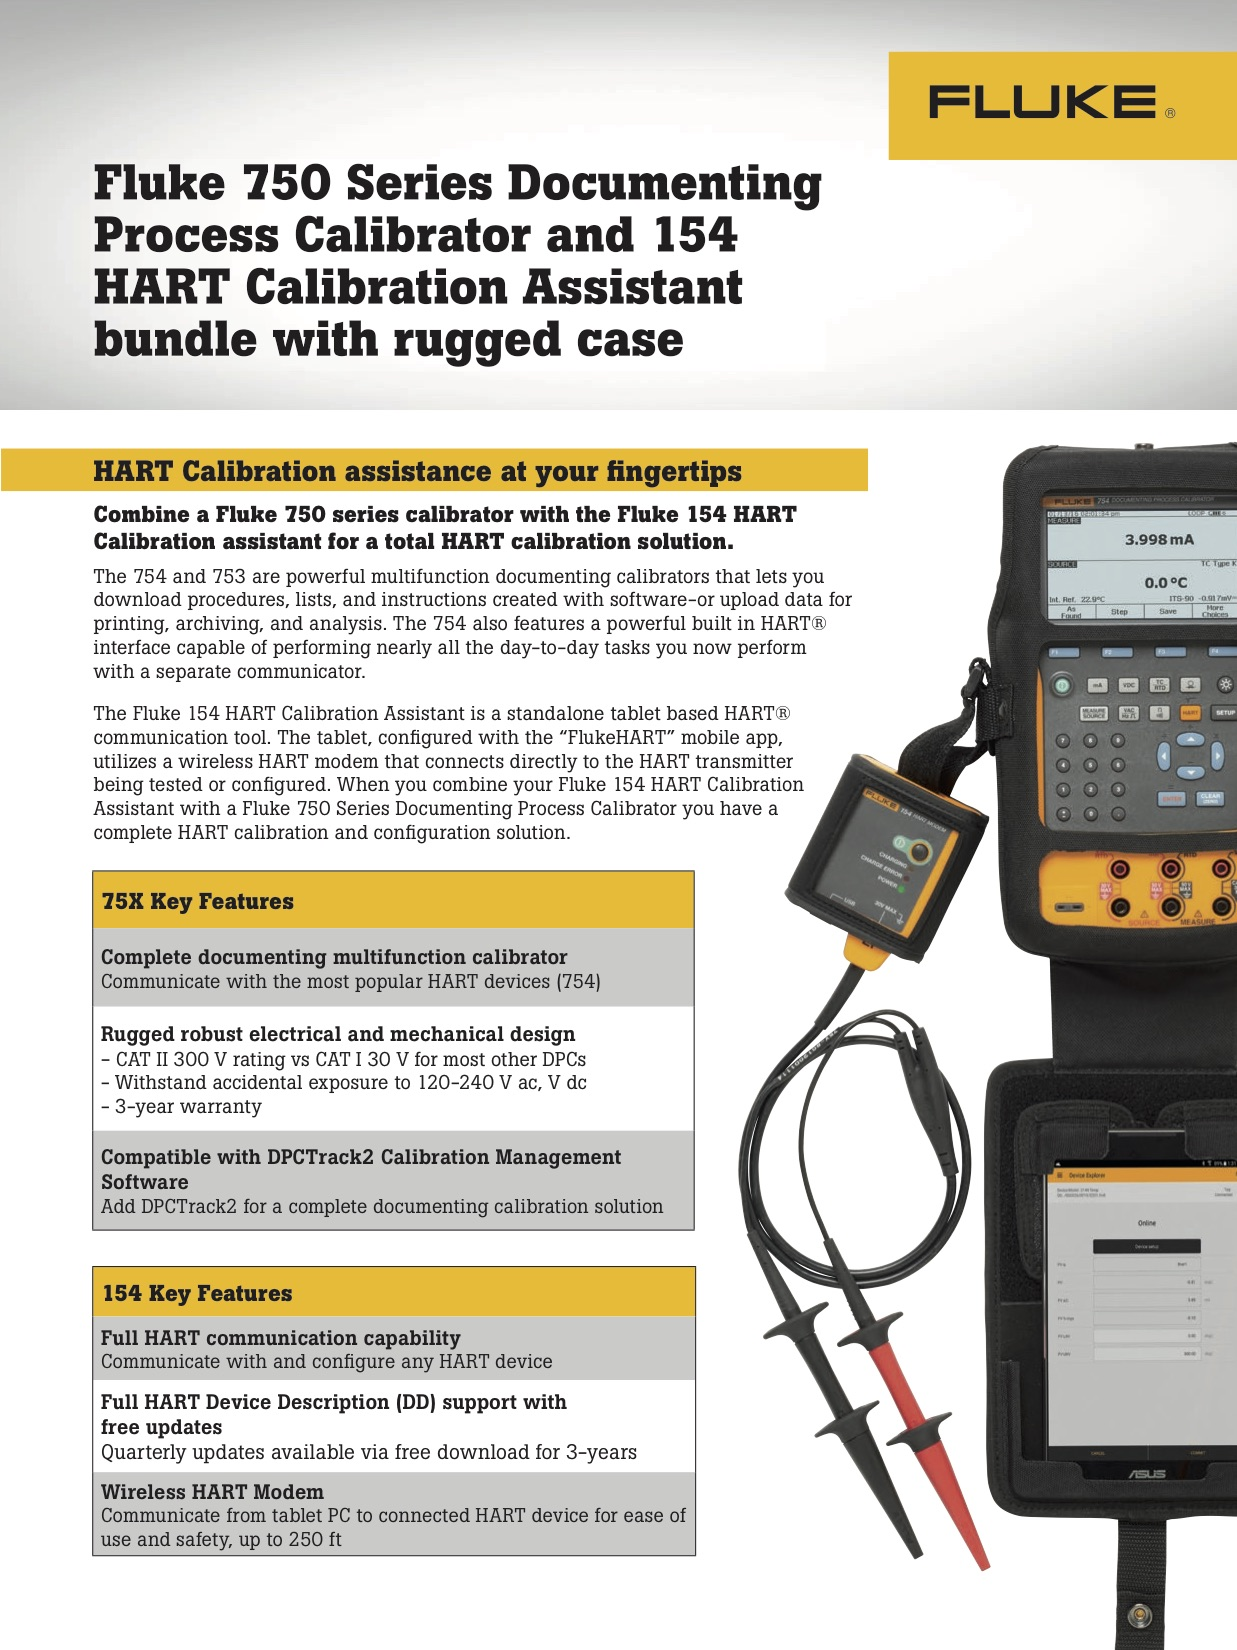 Fluke 745/154 Calibration Bundle Battle Card